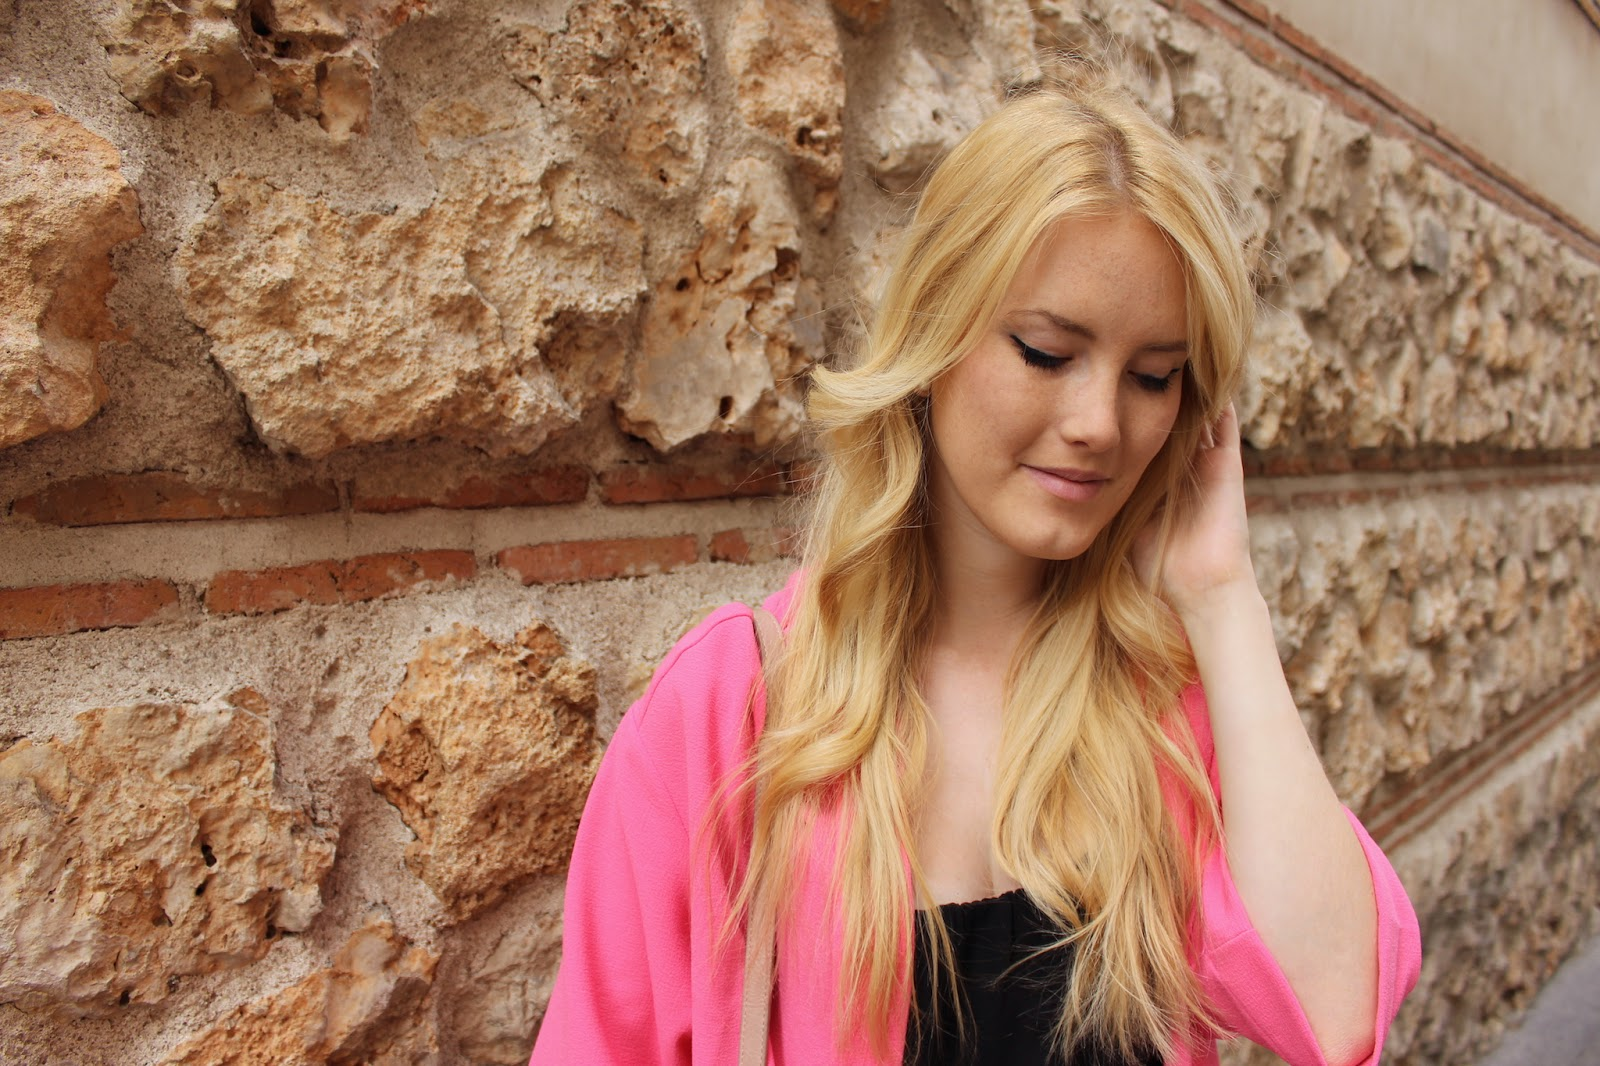 TheBlondeLion Pink Kimono Travel Madrid http://www.theblondelion.com/2015/04/travel-madrid-day-3-pink-power.html